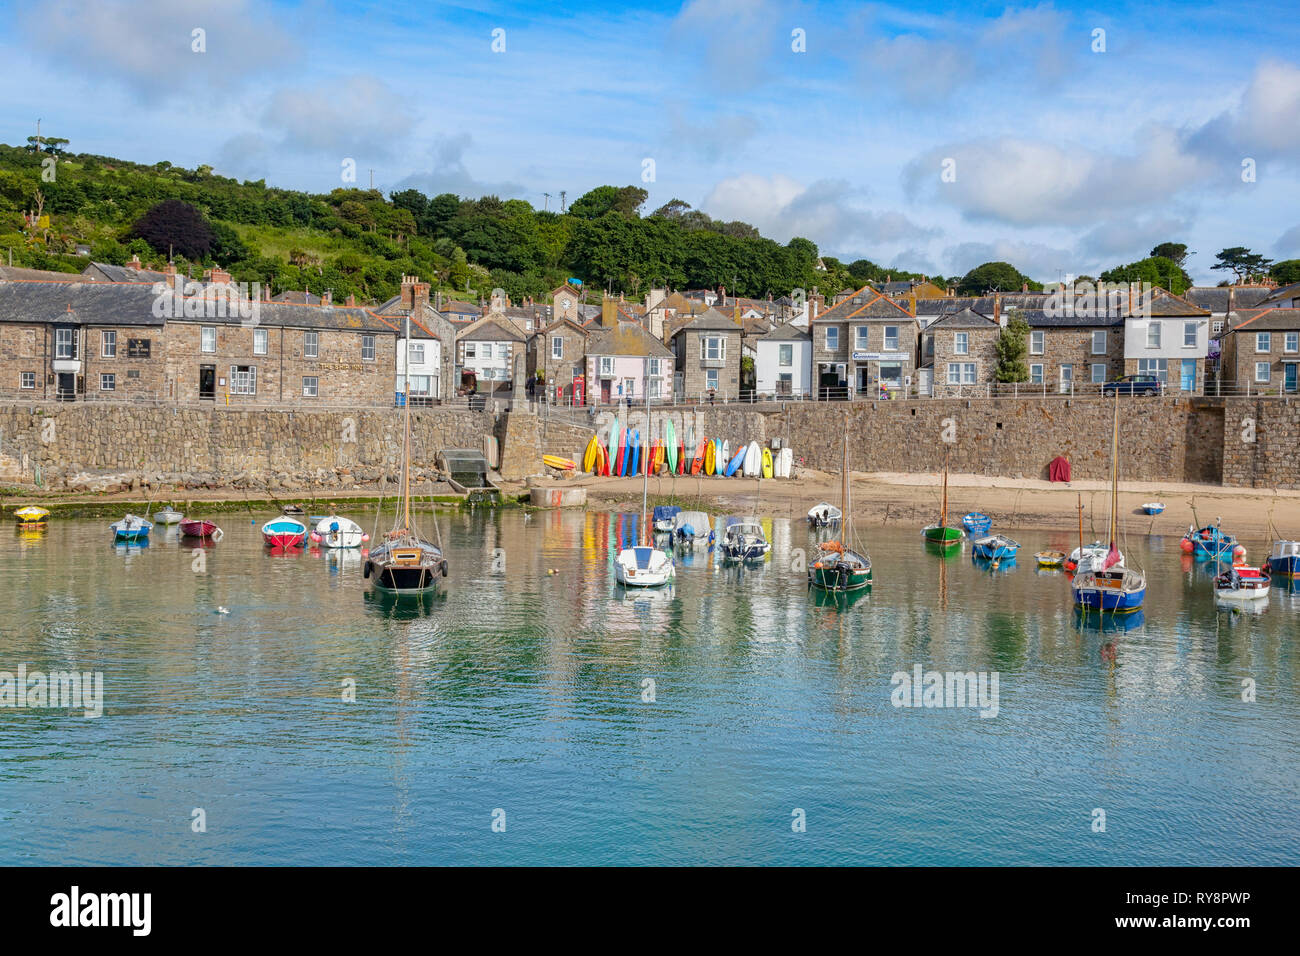 15 June 2018: Mousehole, Cornwall, UK - The harbour and village. Stock Photo